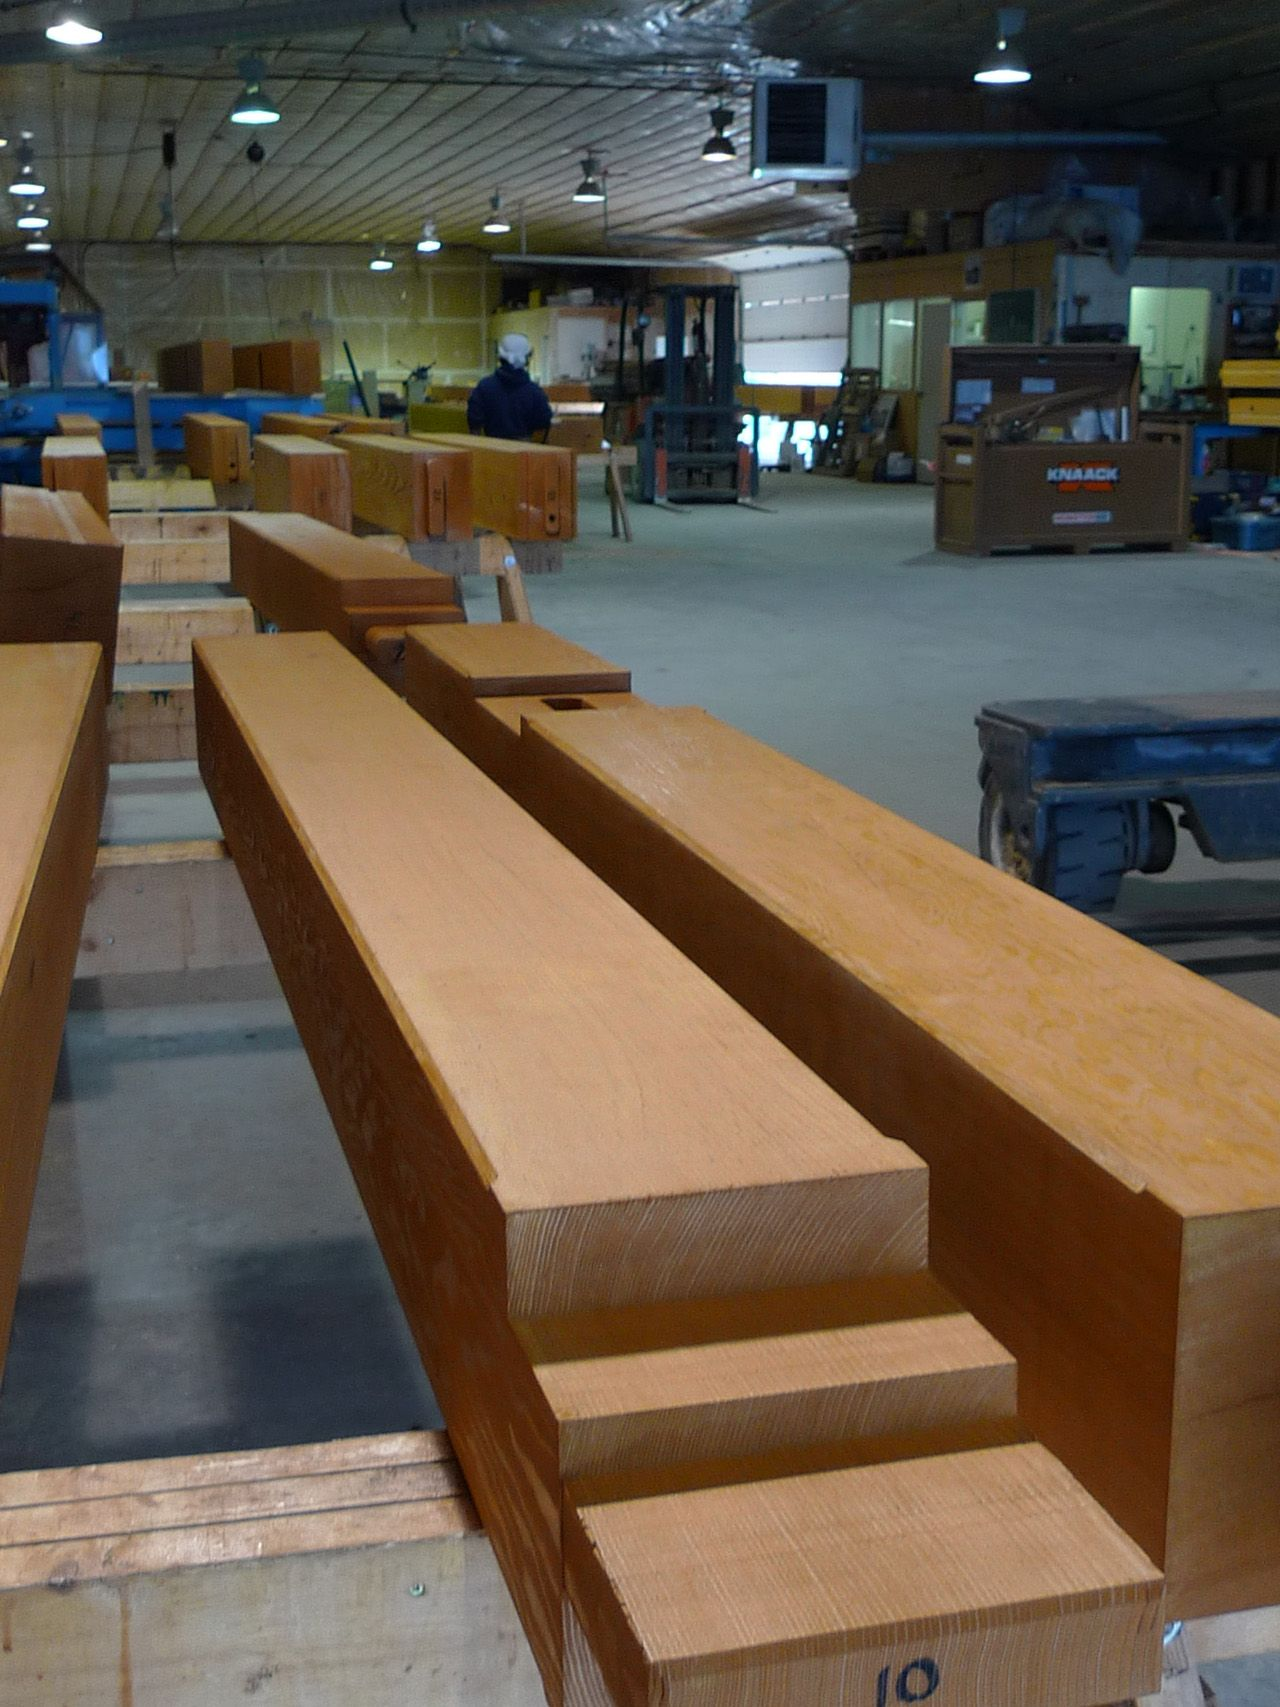 Very High Grade Timber Coastal Douglas Fir Select Structural Grade Fohc 8 Ring Per Inch Kiln Dry In Radio Fre Timber Frame Construction Home Post And Beam